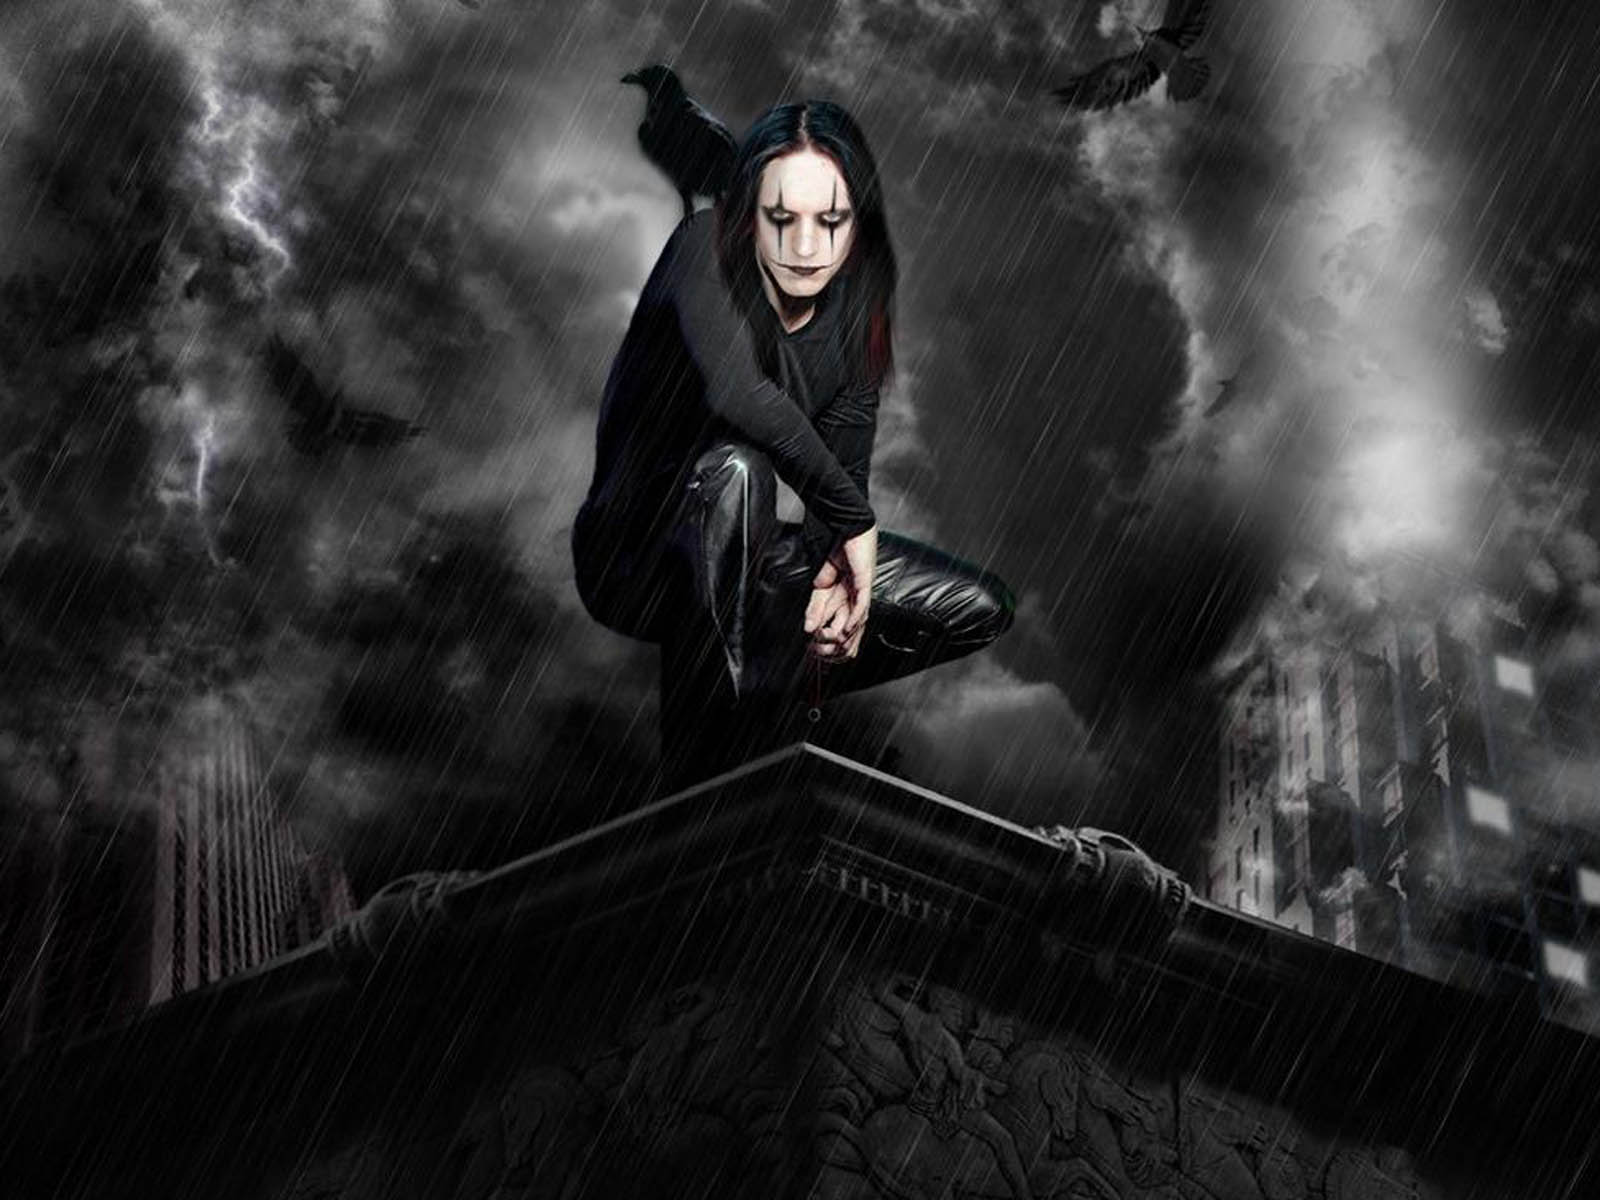 wallpapers Dark Gothic Wallpapers 1600x1200